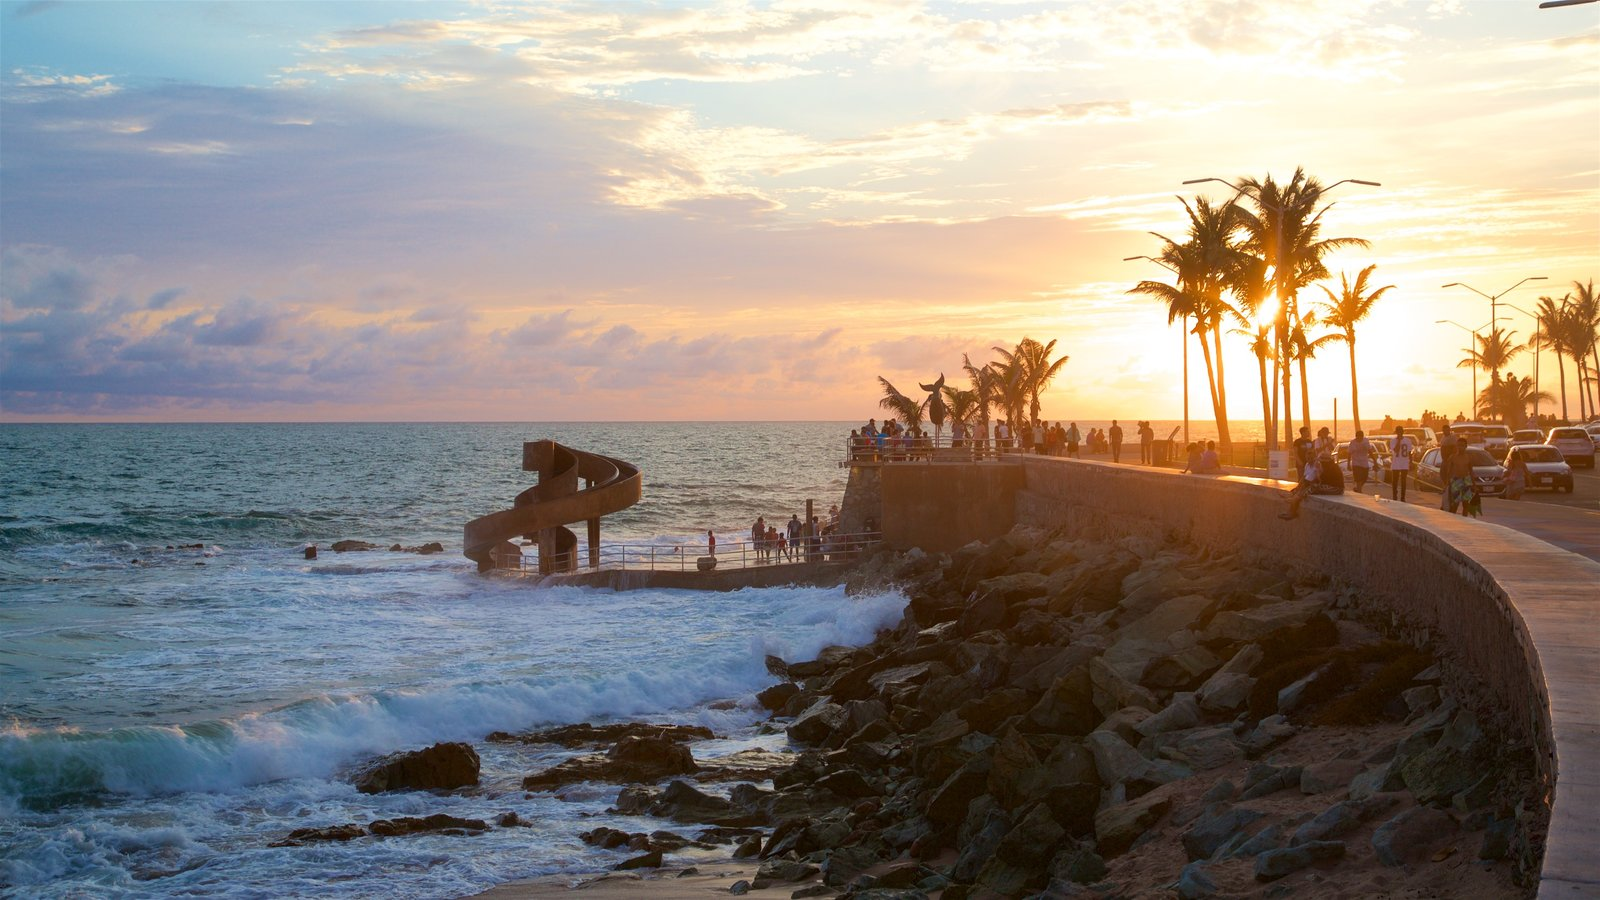 Olas Altas Beach Showing Waves General Coastal Views And A Sunset